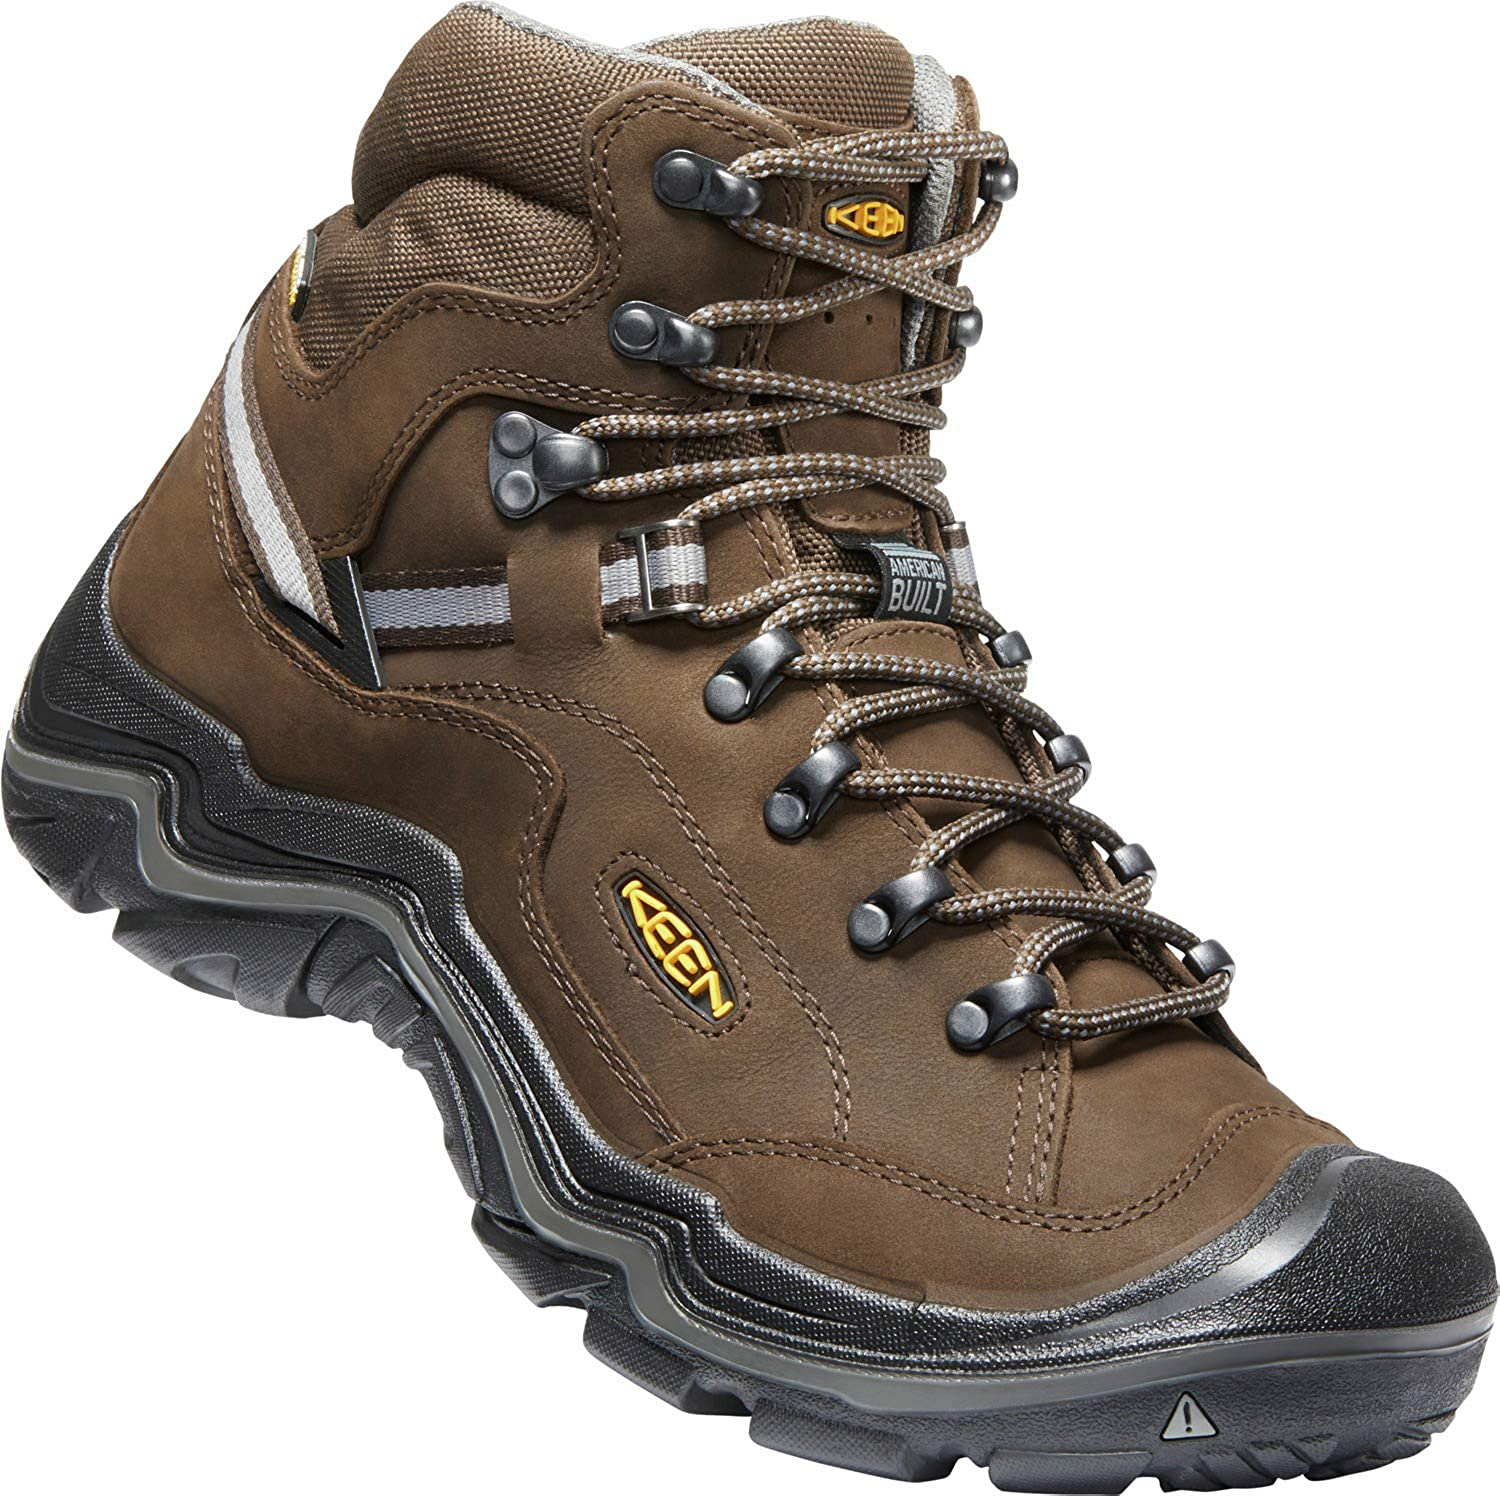 KEEN Waterproof Hiking Boots Mens Durand II Mid WP Wide